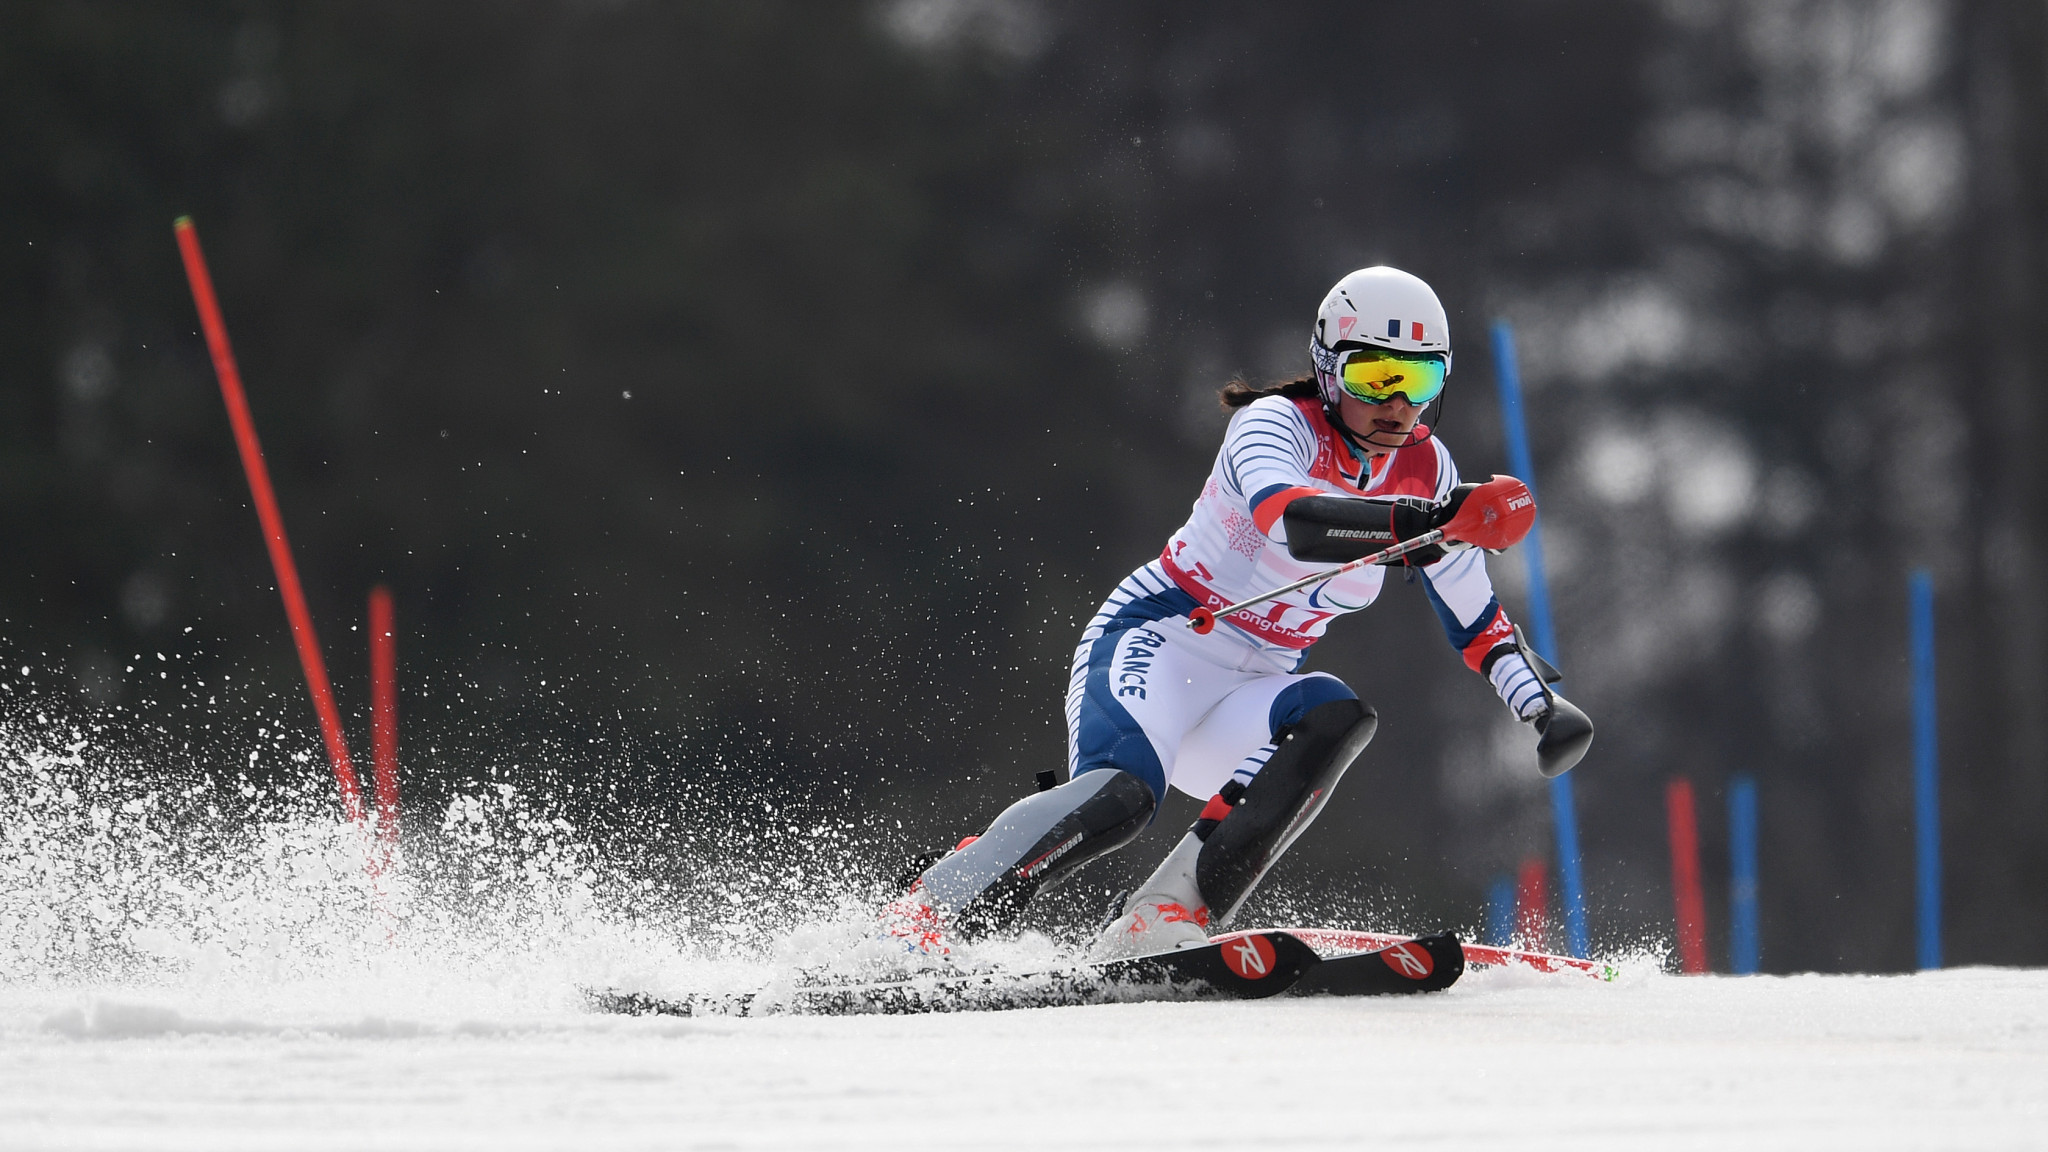 The world's top Para Alpine skiers are set to compete at the event next year ©Getty Images